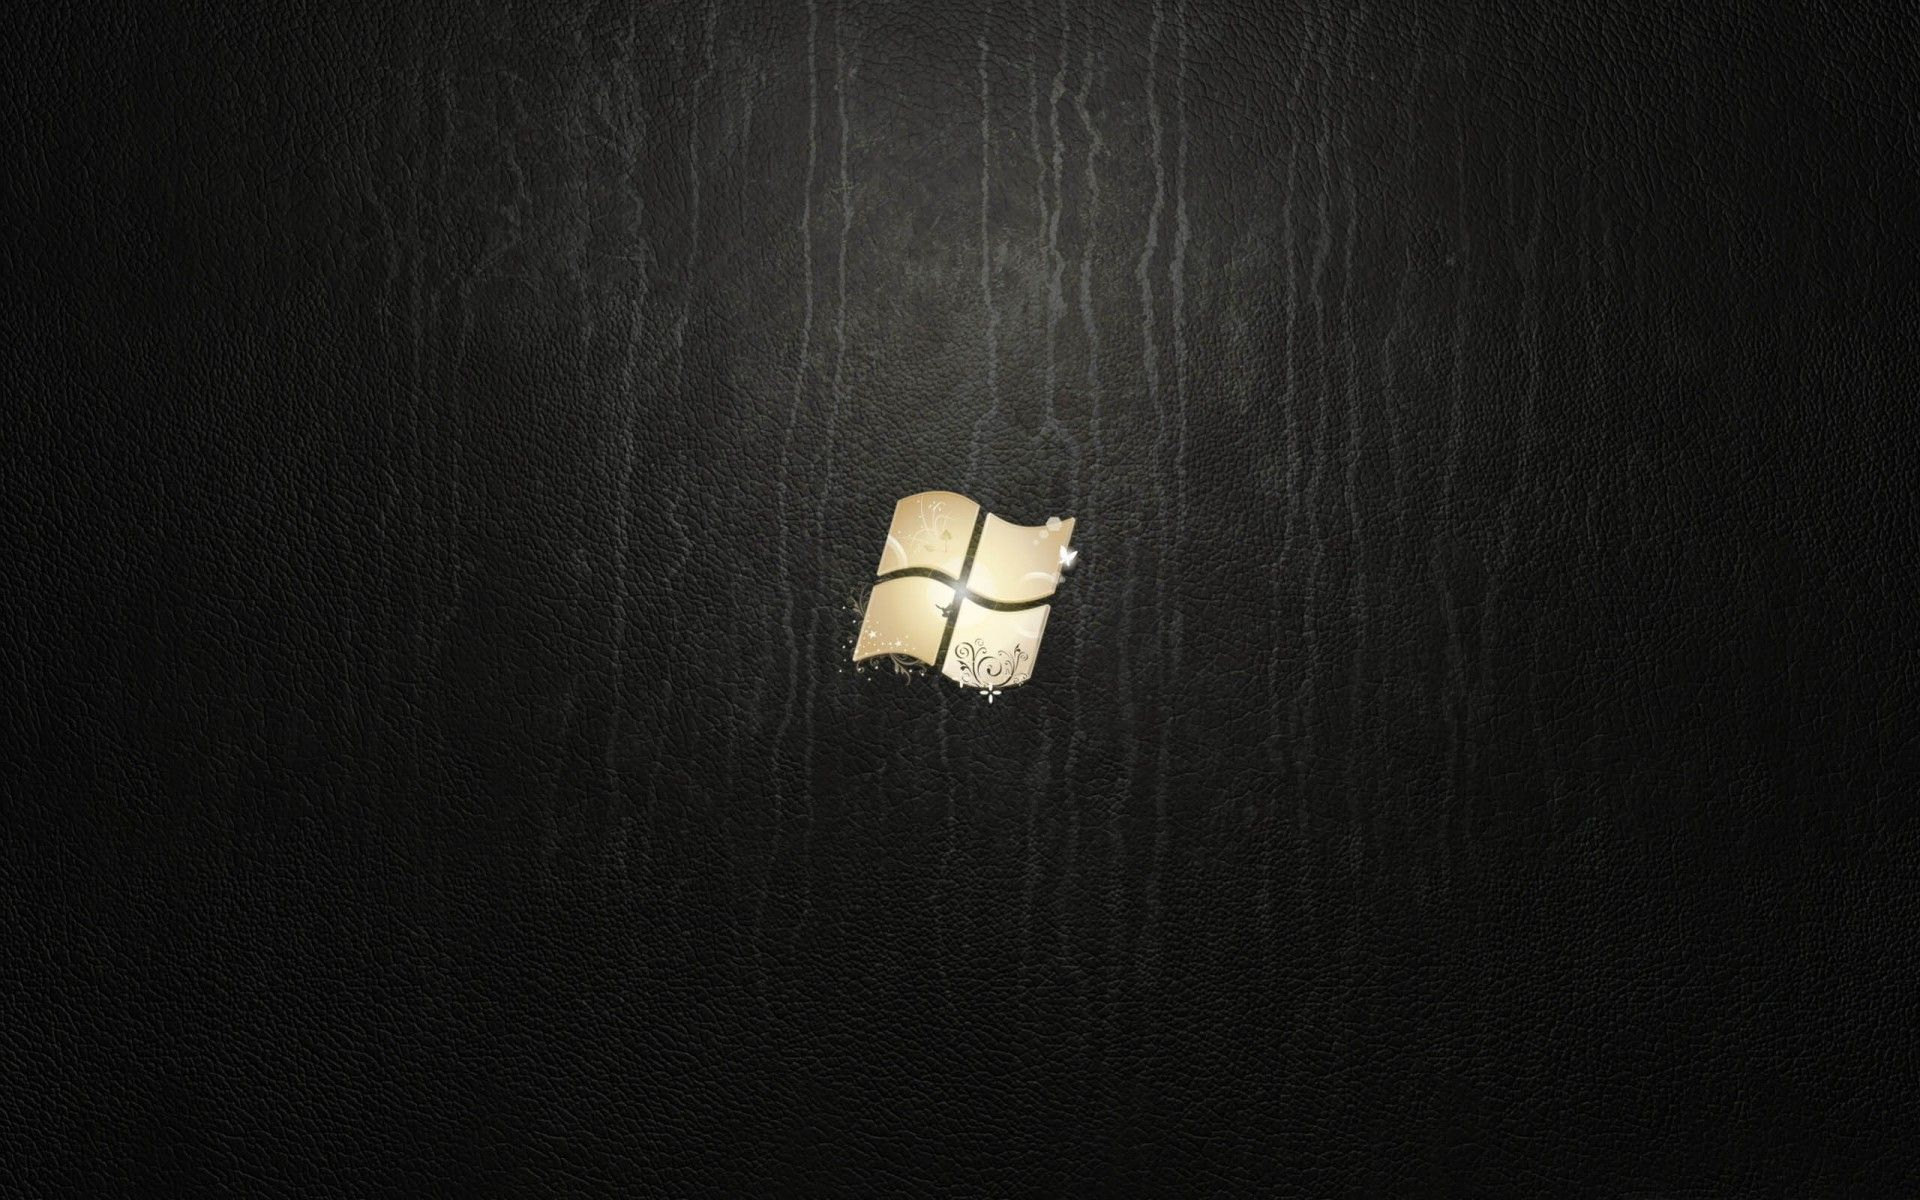 """1920x1200 Windows 7: """"Ultimate Leather"""" wallpaper (2009, edited) 